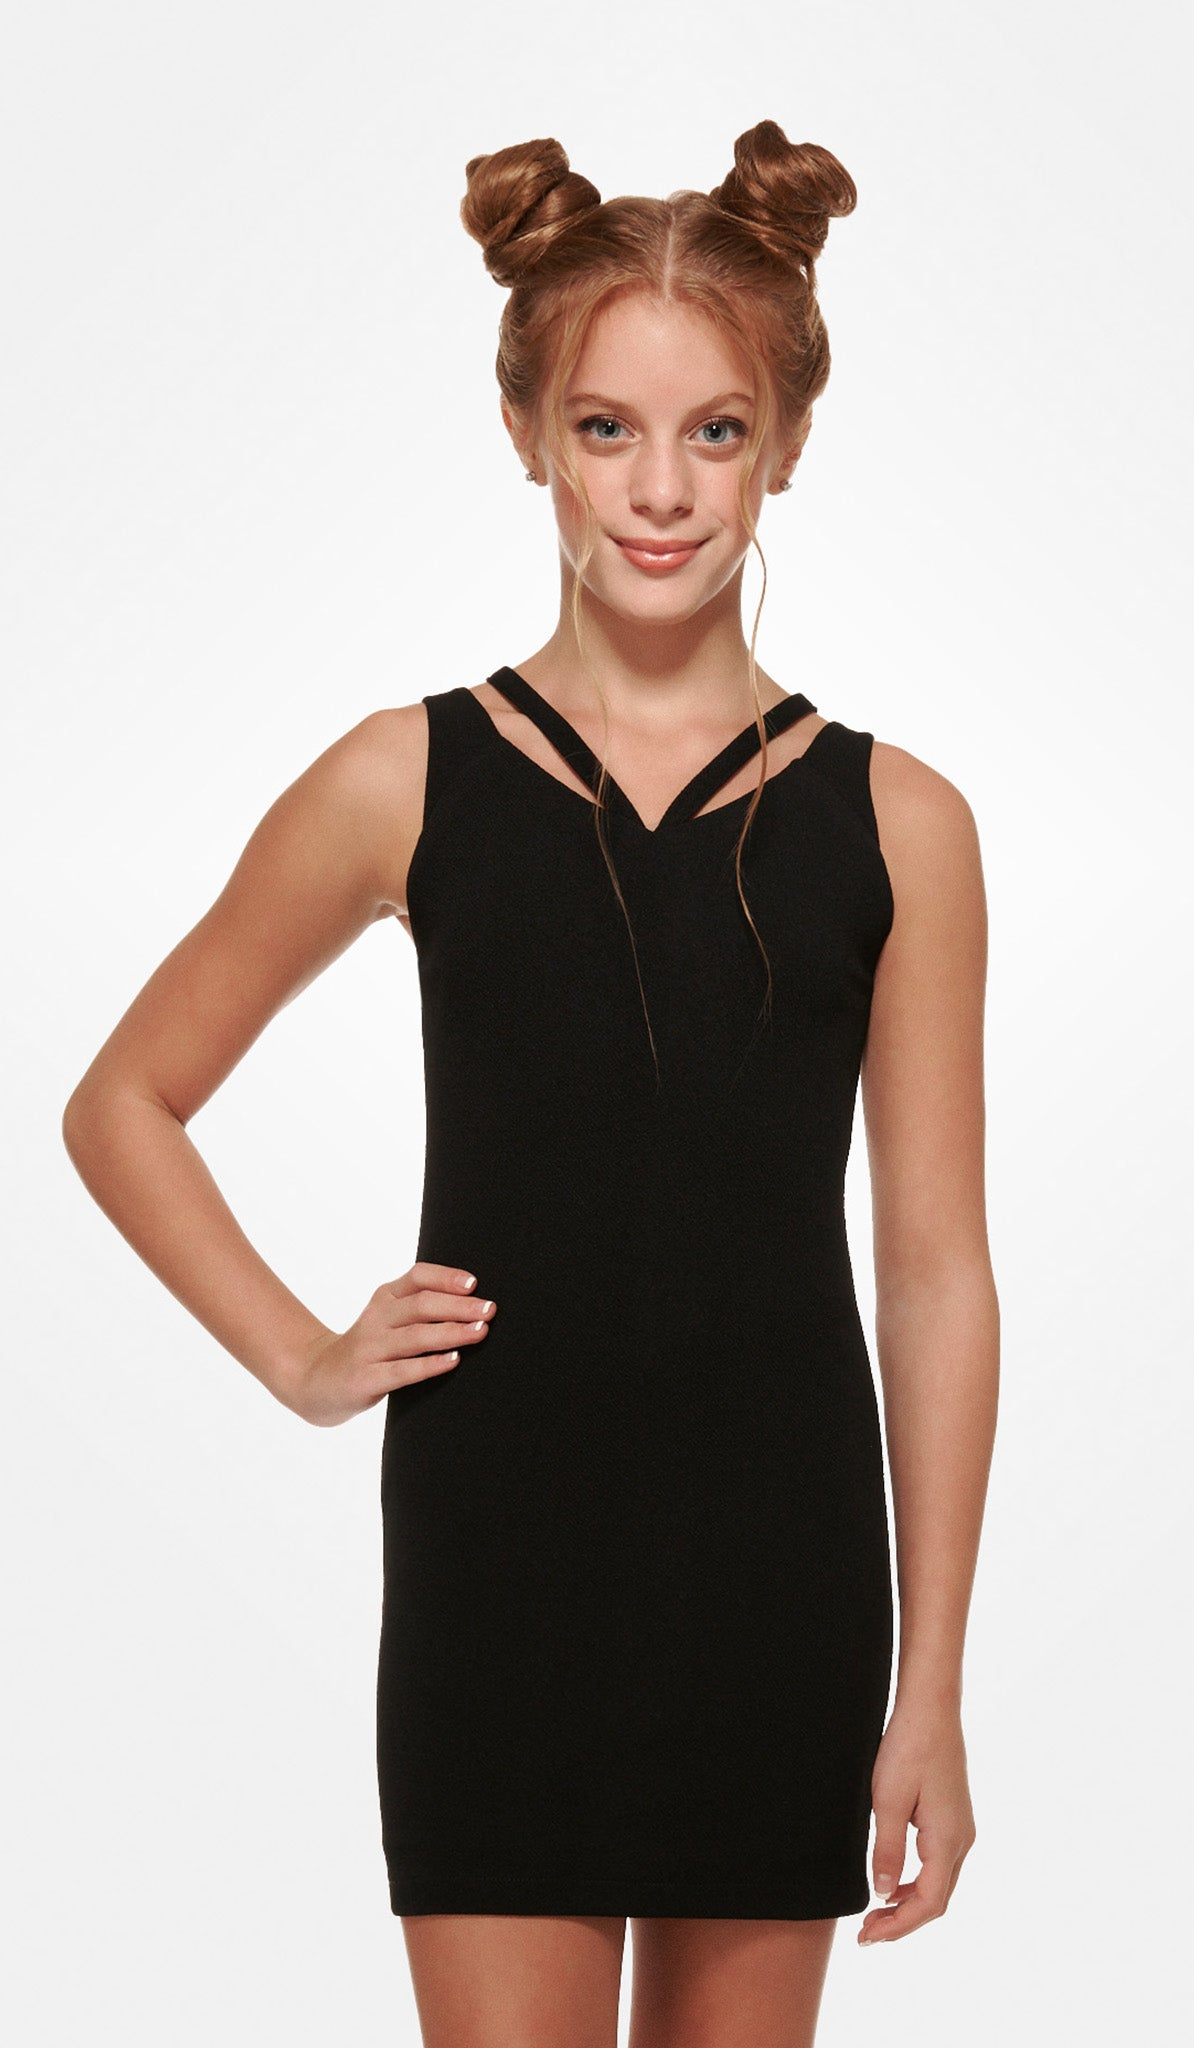 The Sally Miller Kate Dress - Black textured knit bodycon dress with double straps